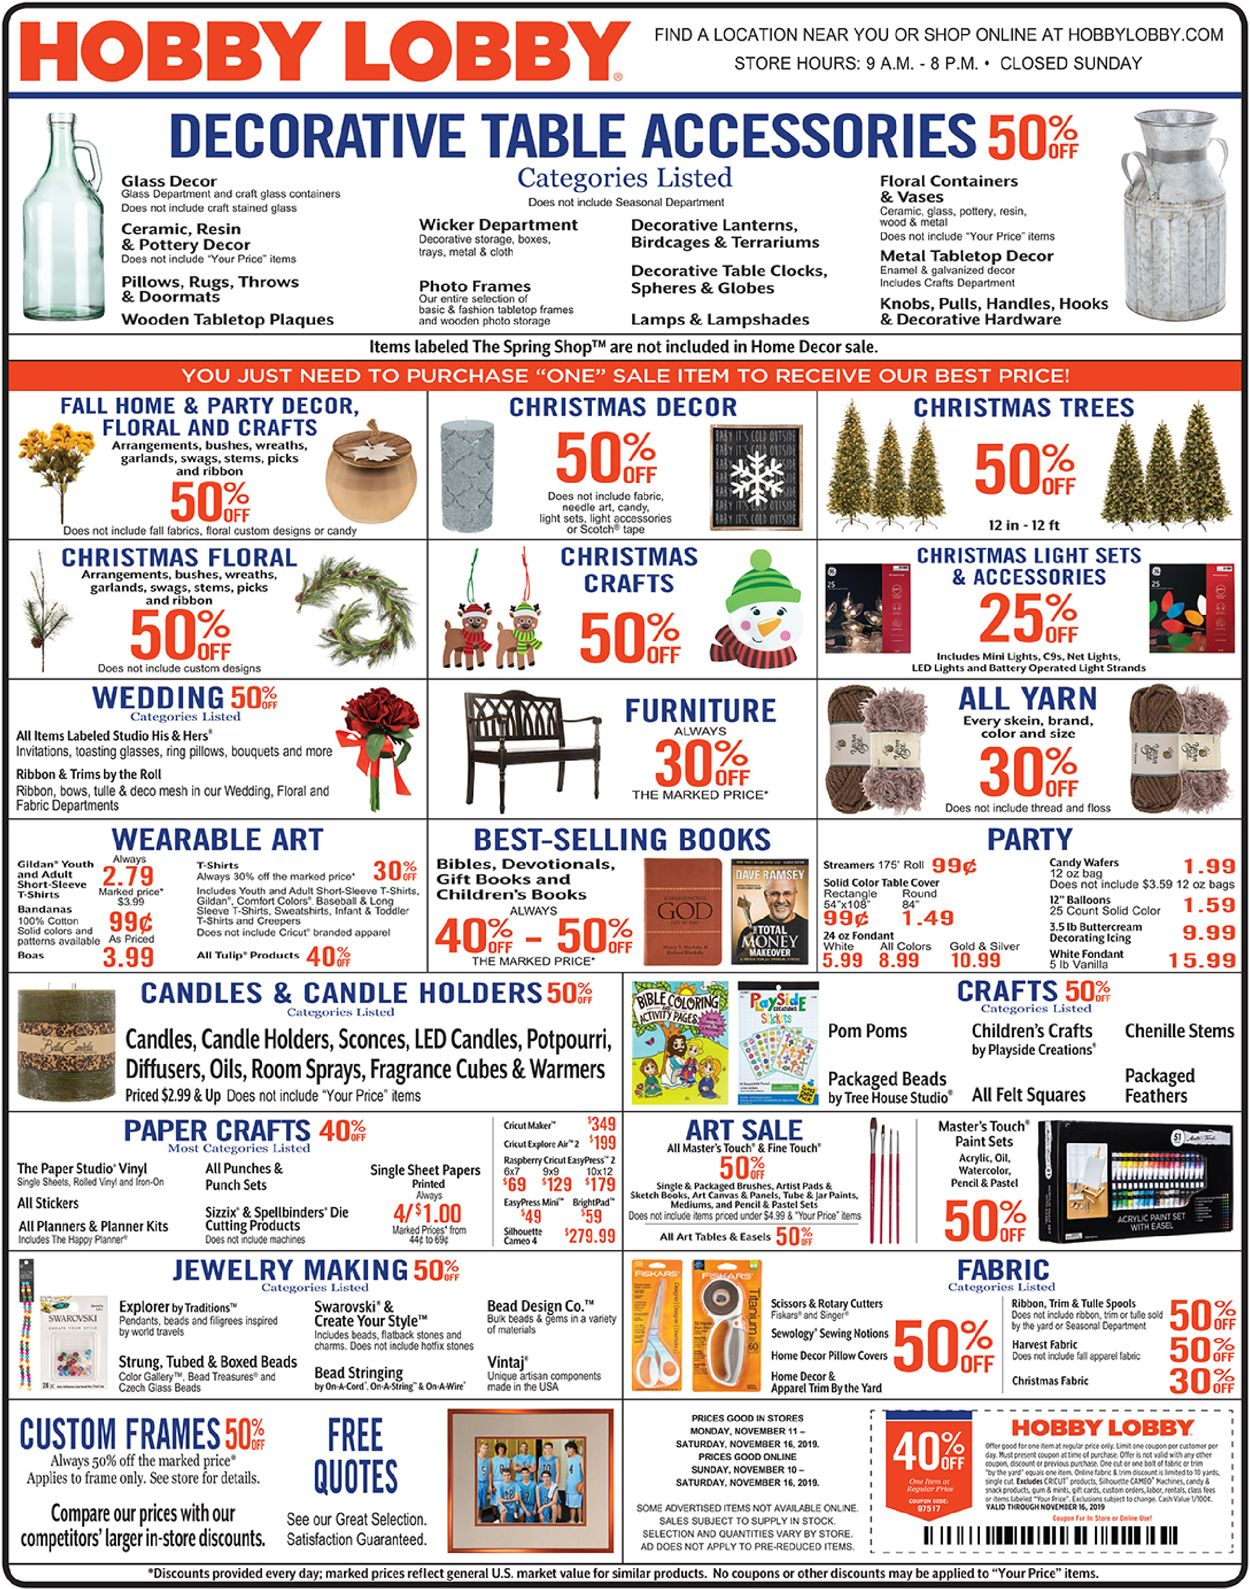 Hobby Lobby Current Weekly Ad 11 11 11 16 2019 Frequent Ads Com